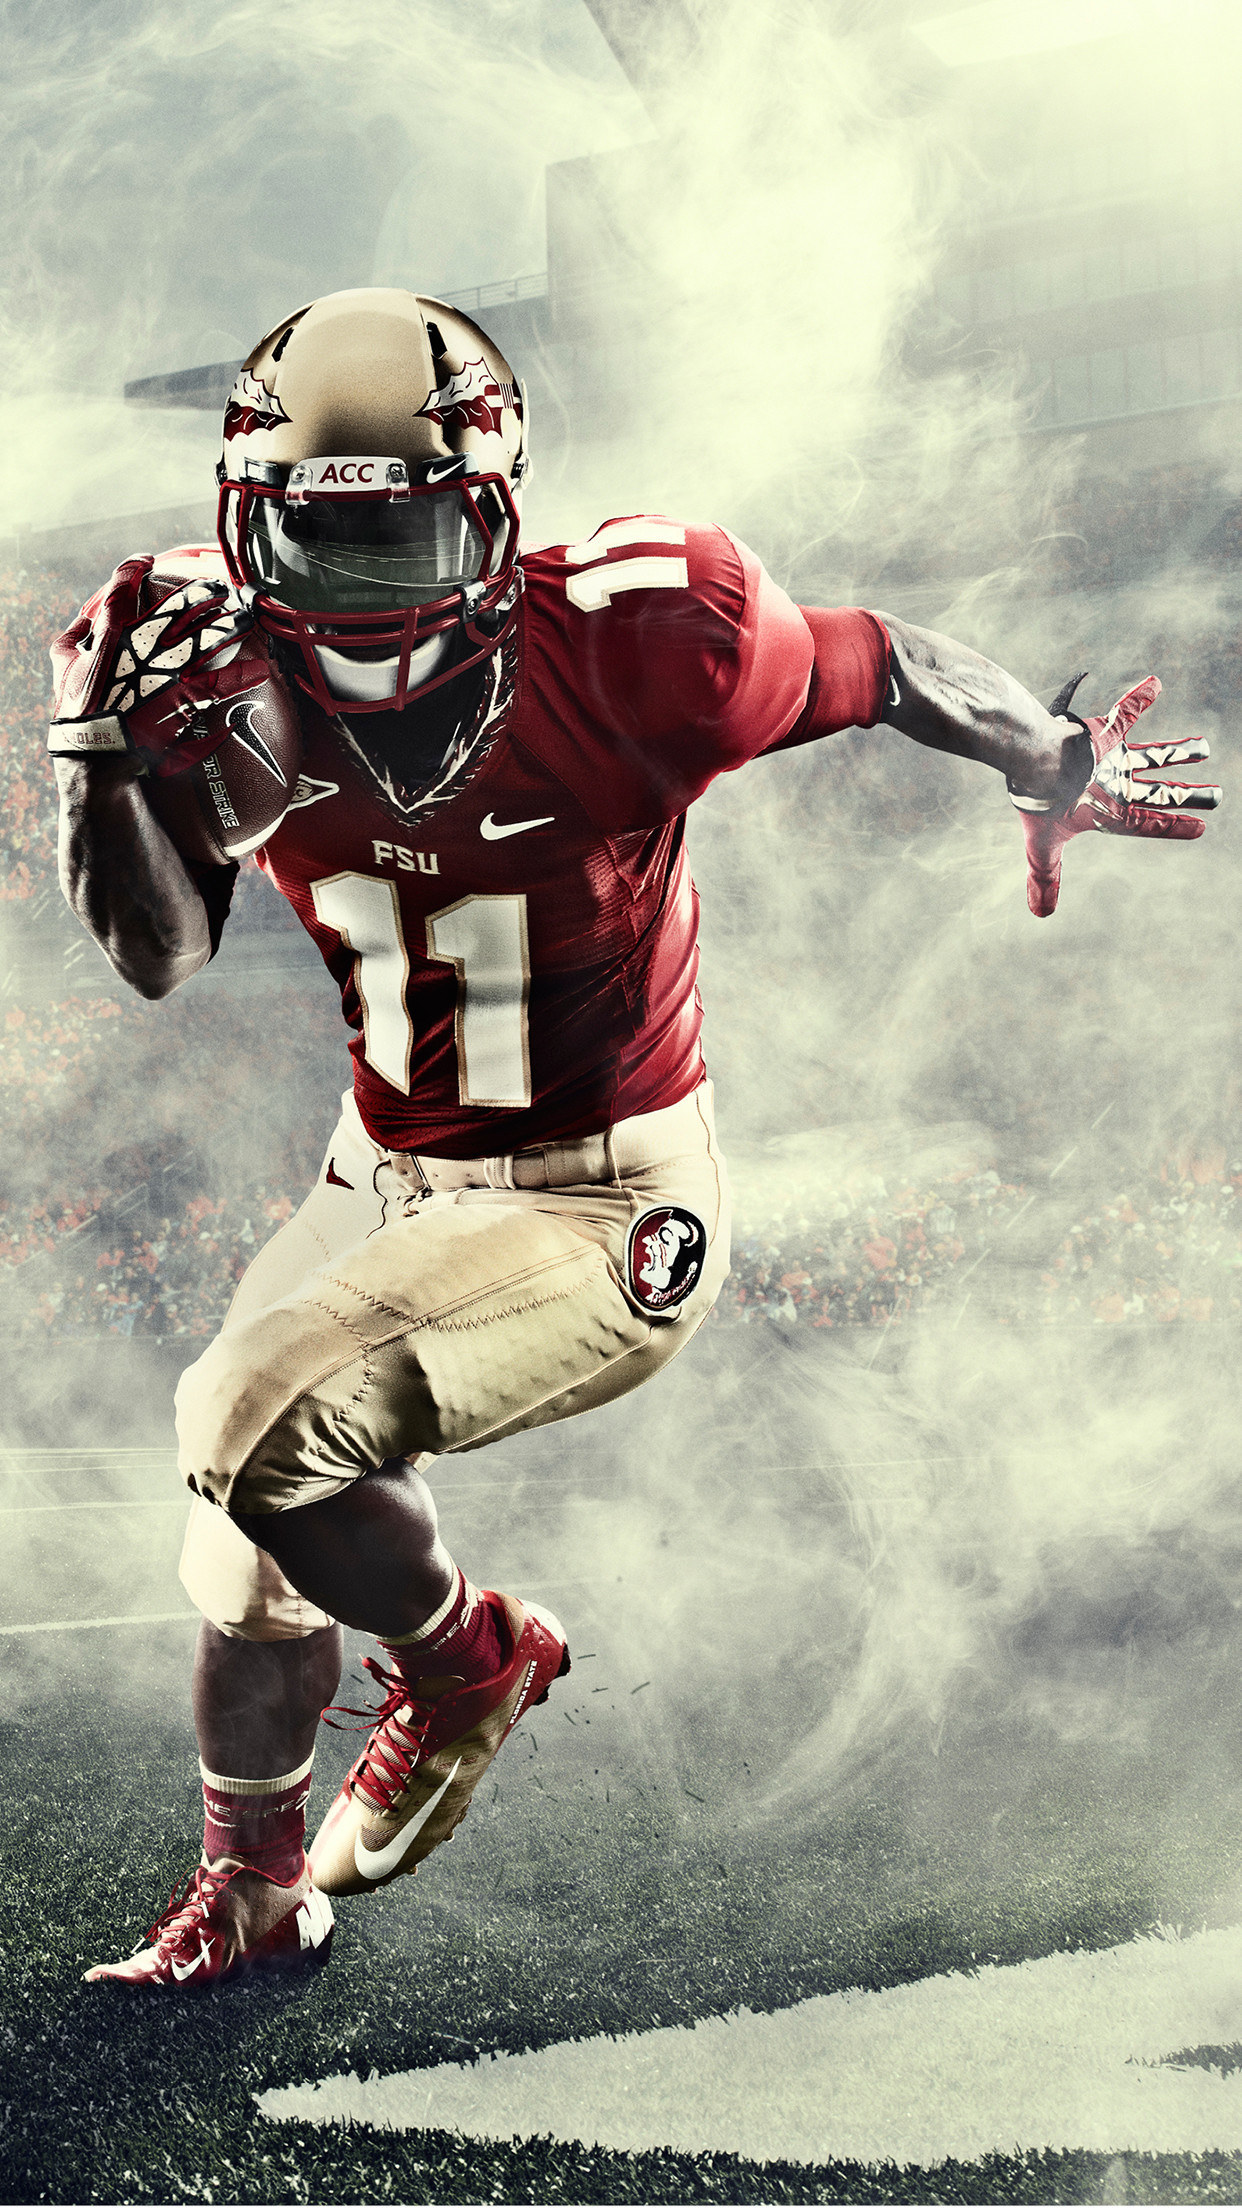 Nike Wallpaper Football 60 Pictures